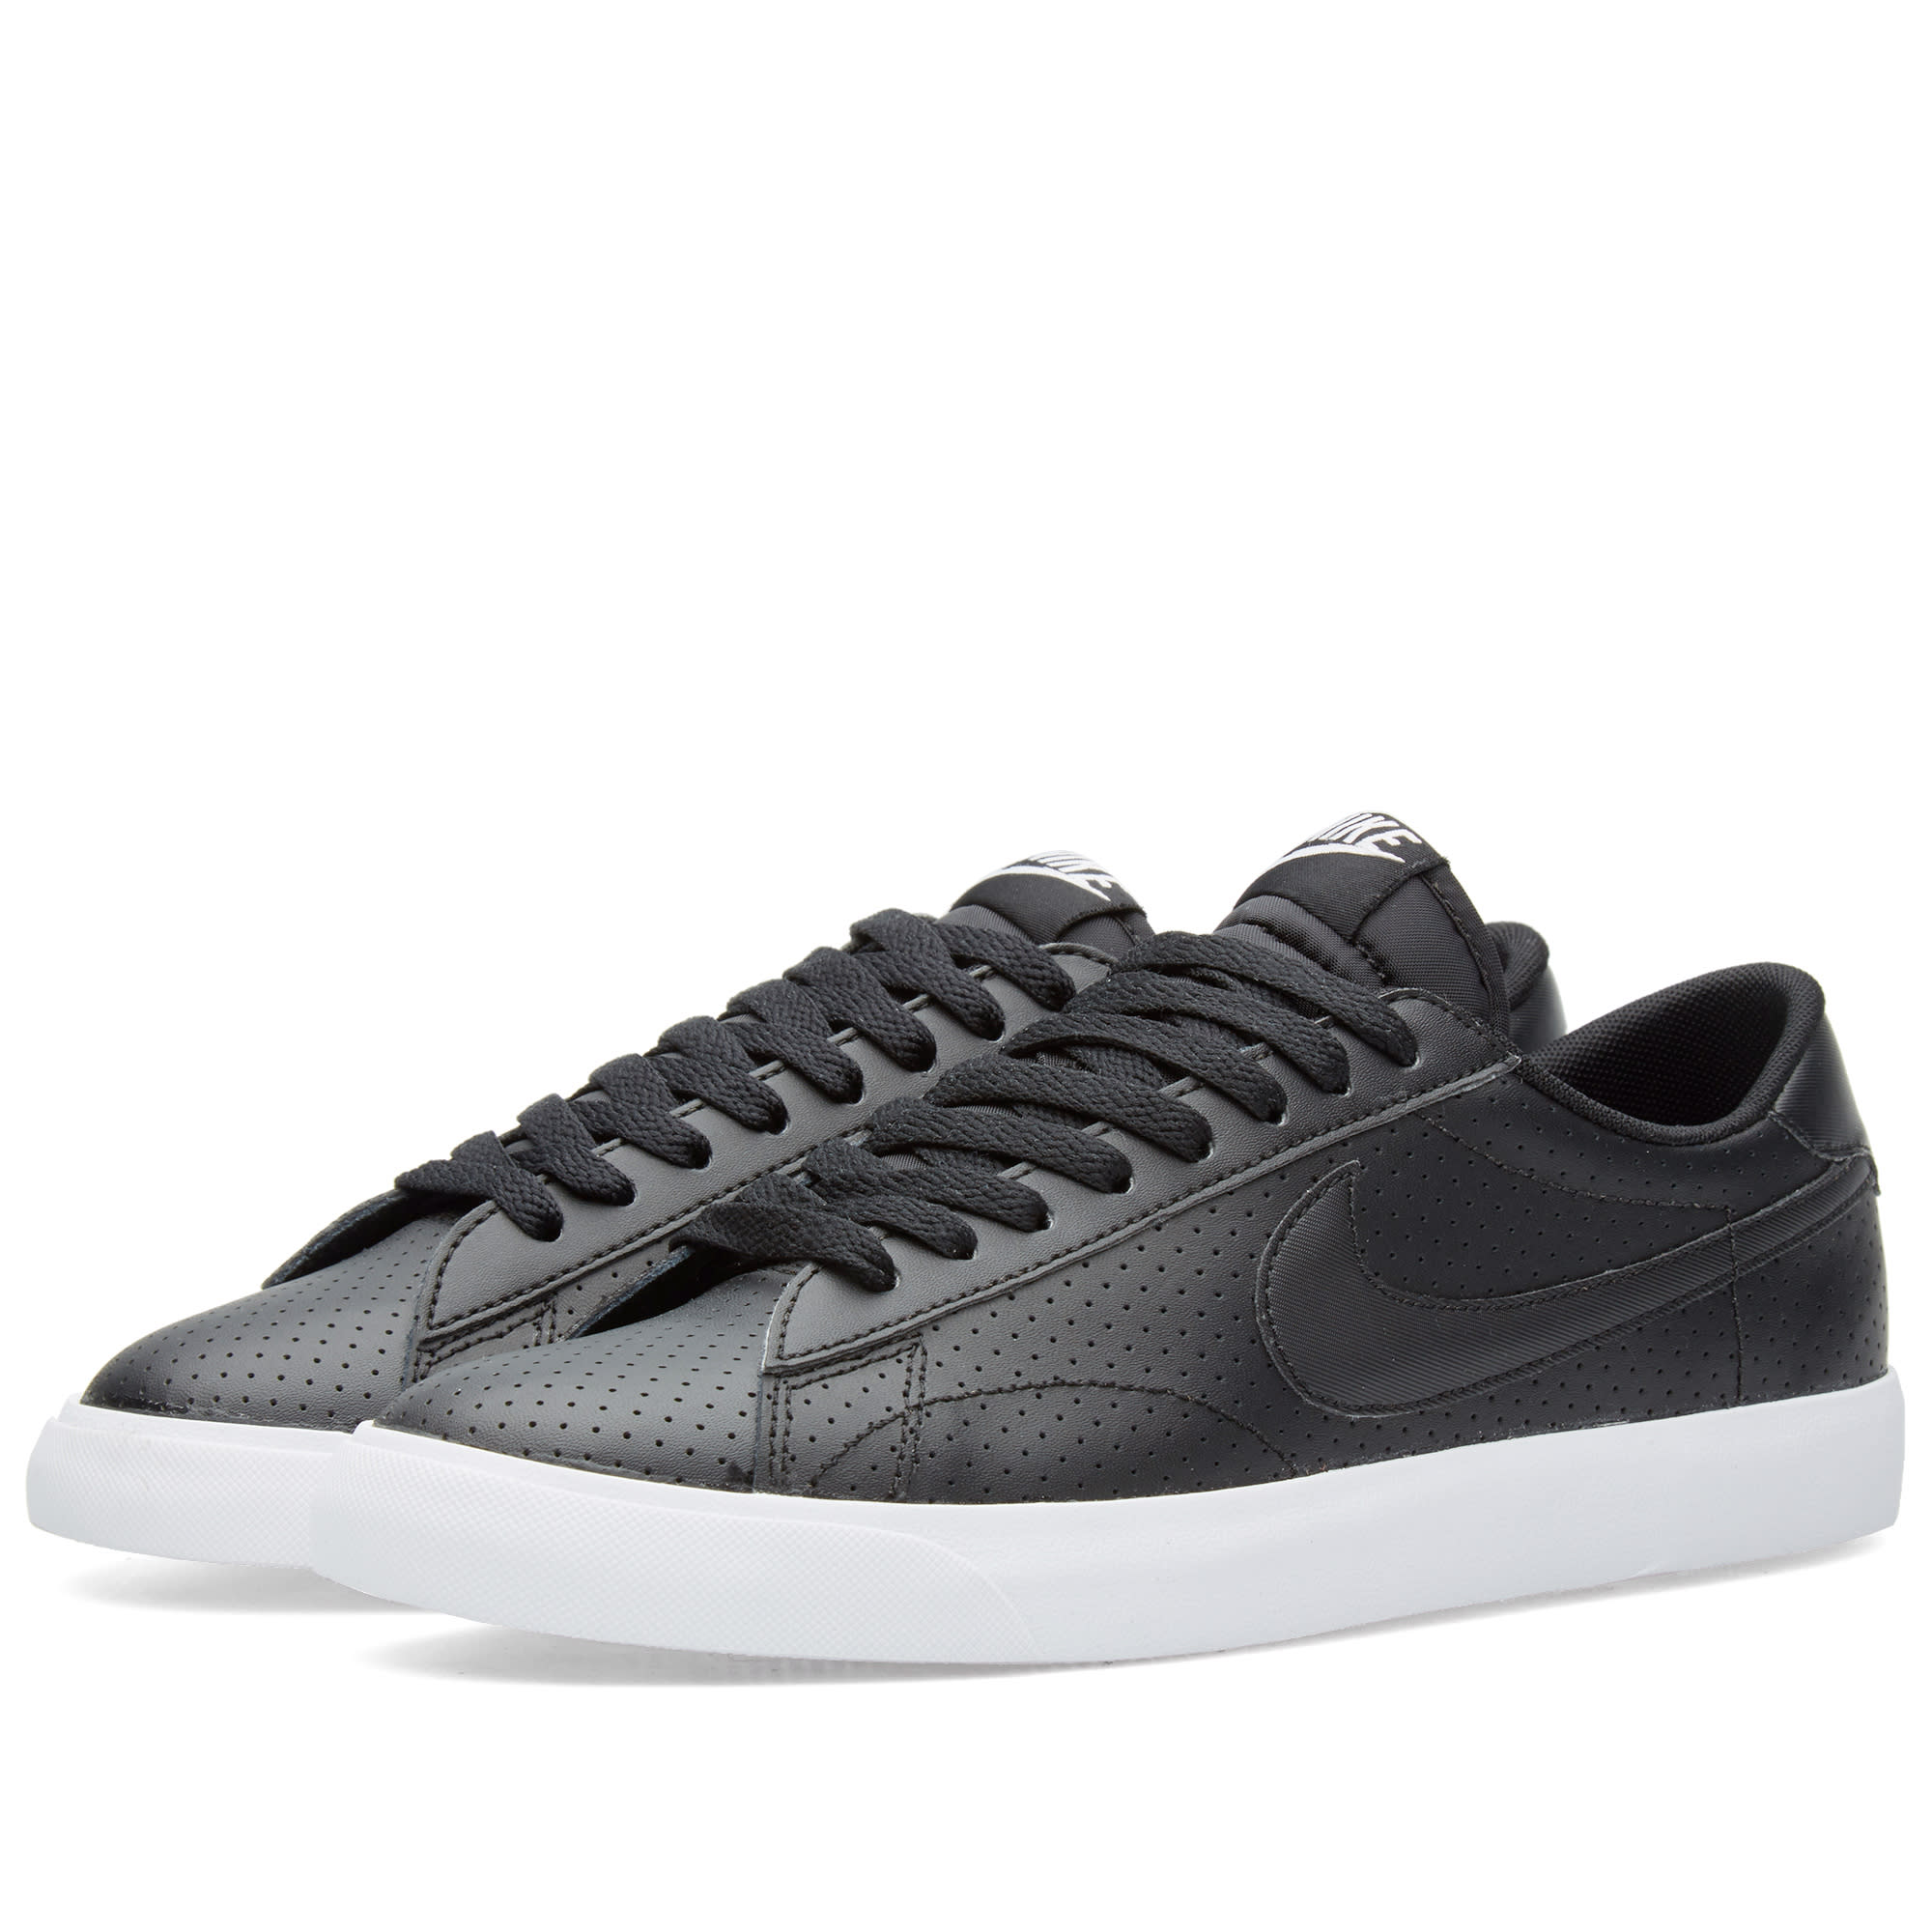 pretty nice 9d1bb 880a7 Nike Tennis Classic AC Black   White   END.